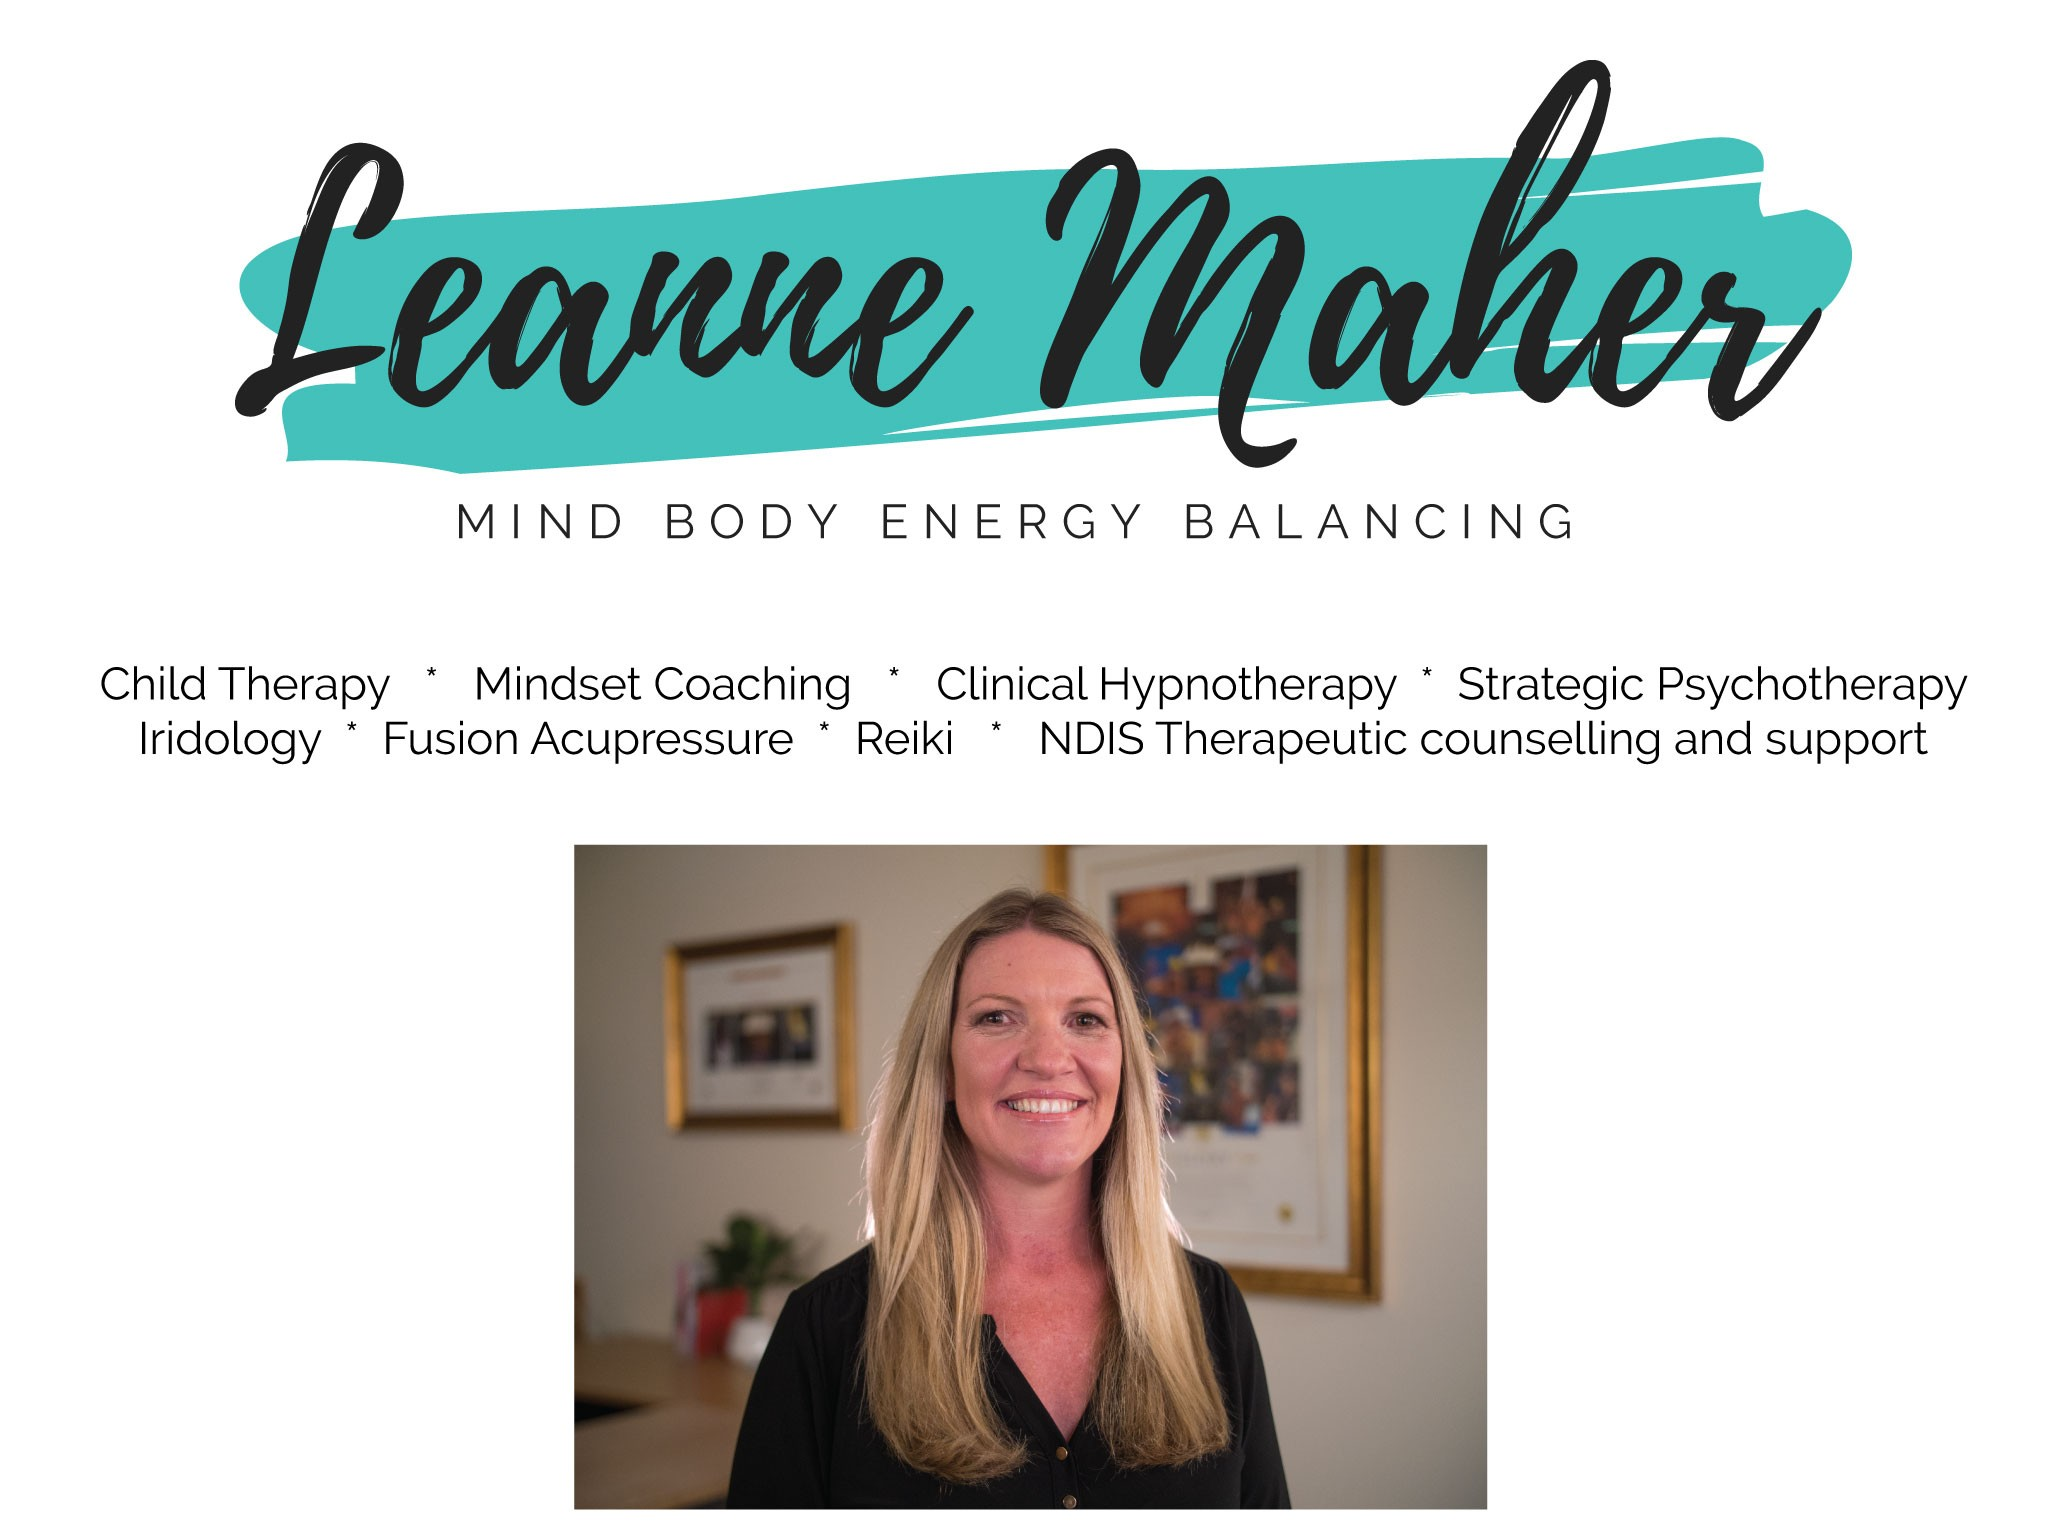 Learn Maher - mind body energy balancing